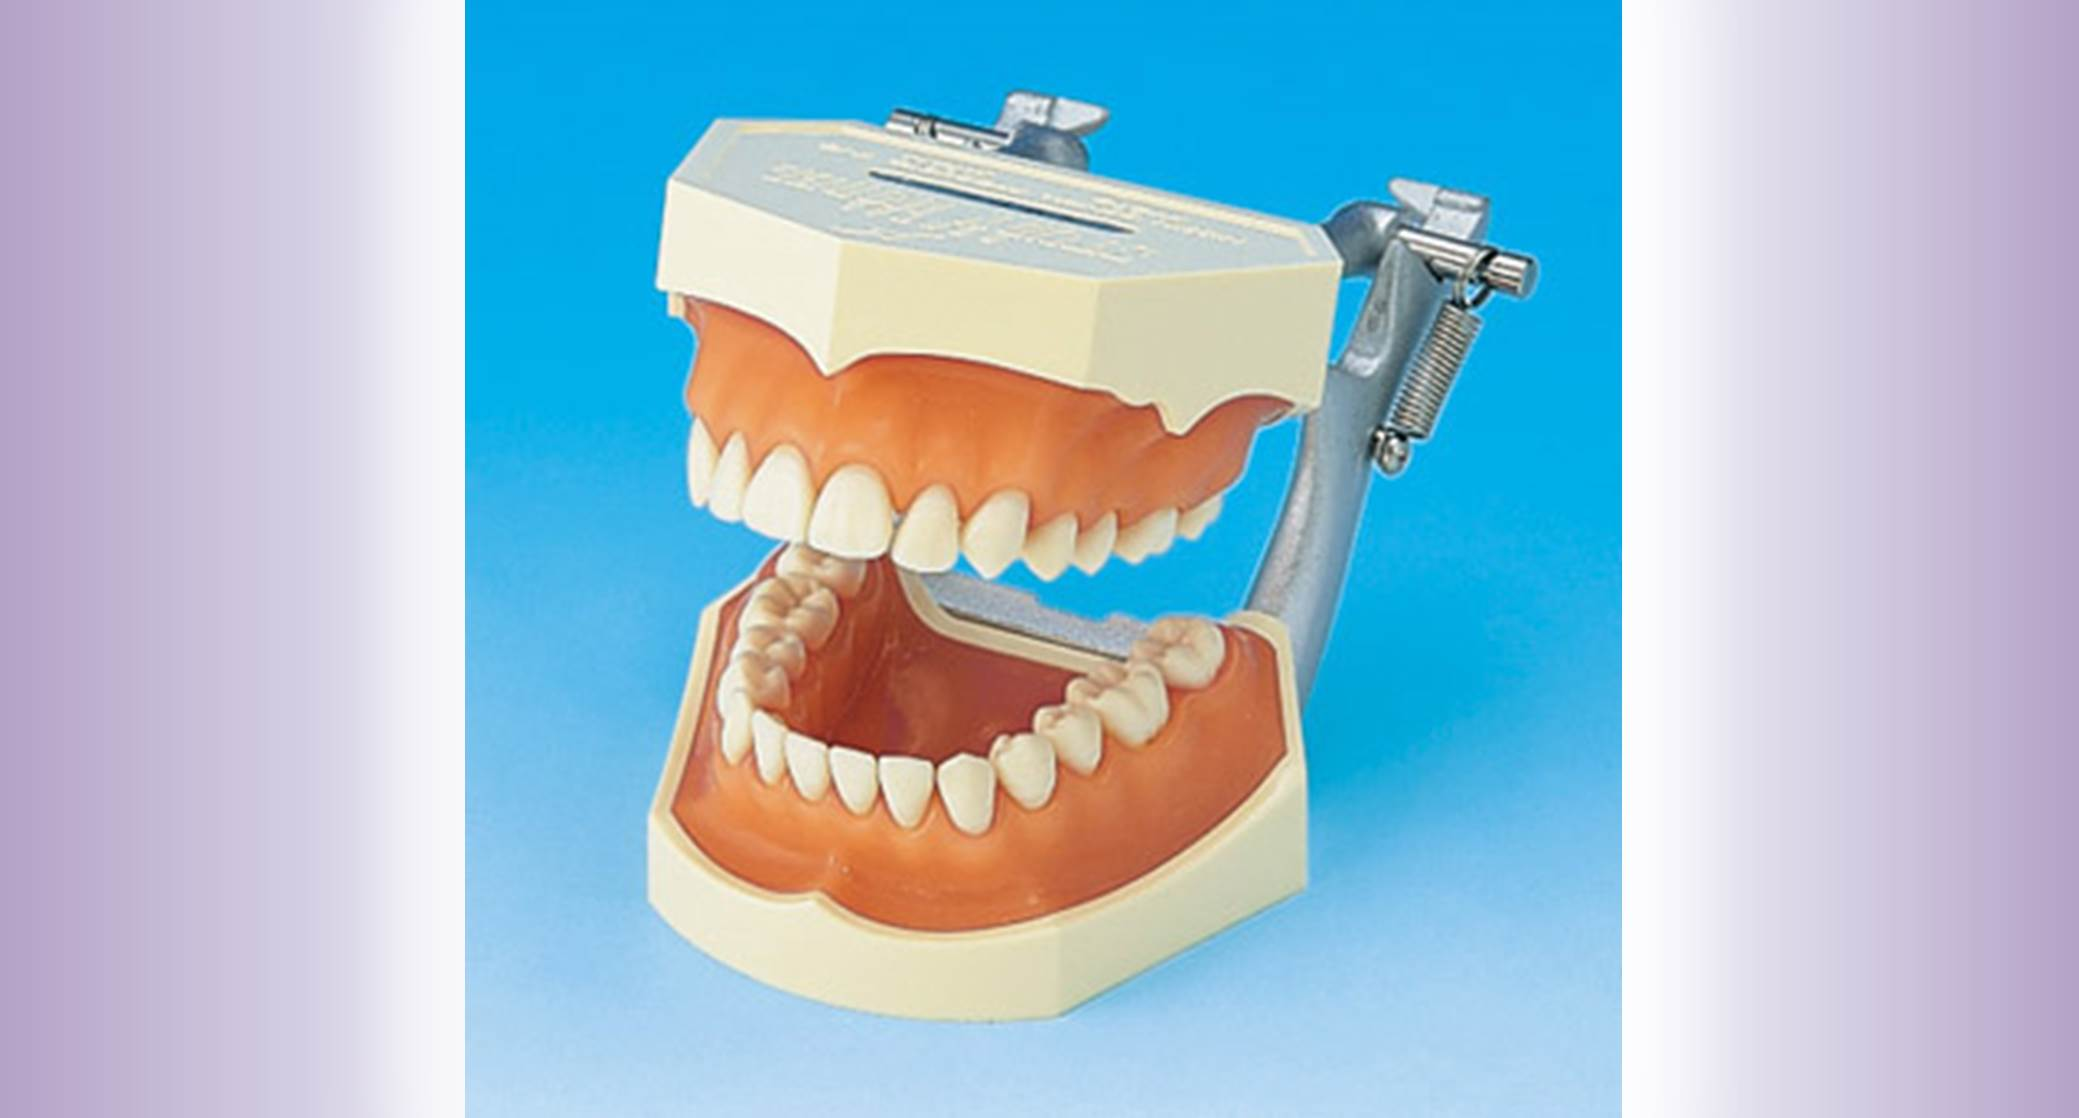 Tooth Anatomy widget